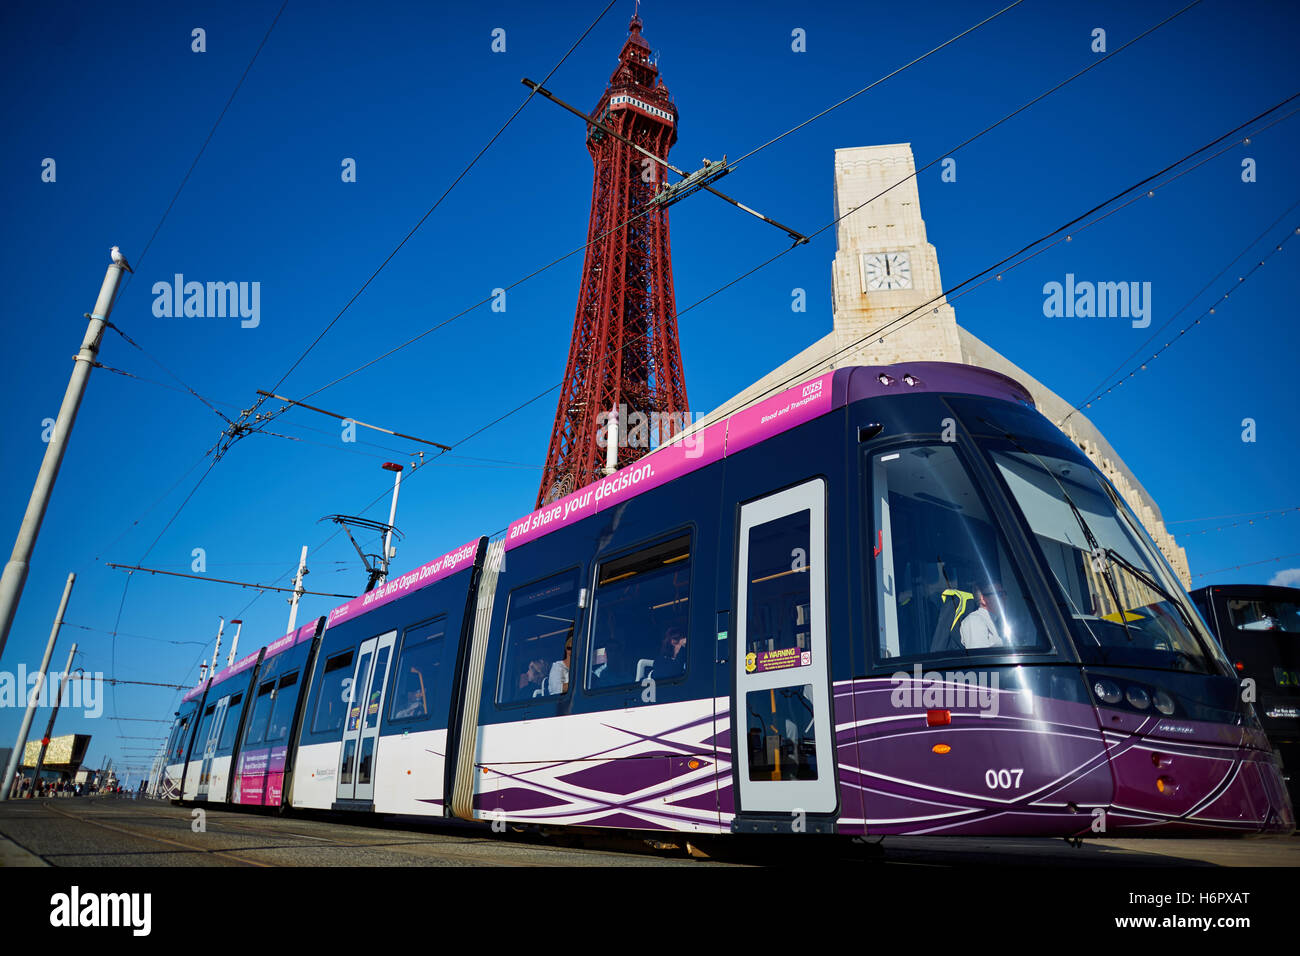 Blackpool ftower modern tram light rail  Holiday sea side town resort Lancashire tourist attractions  tower copyspace blue sky d Stock Photo